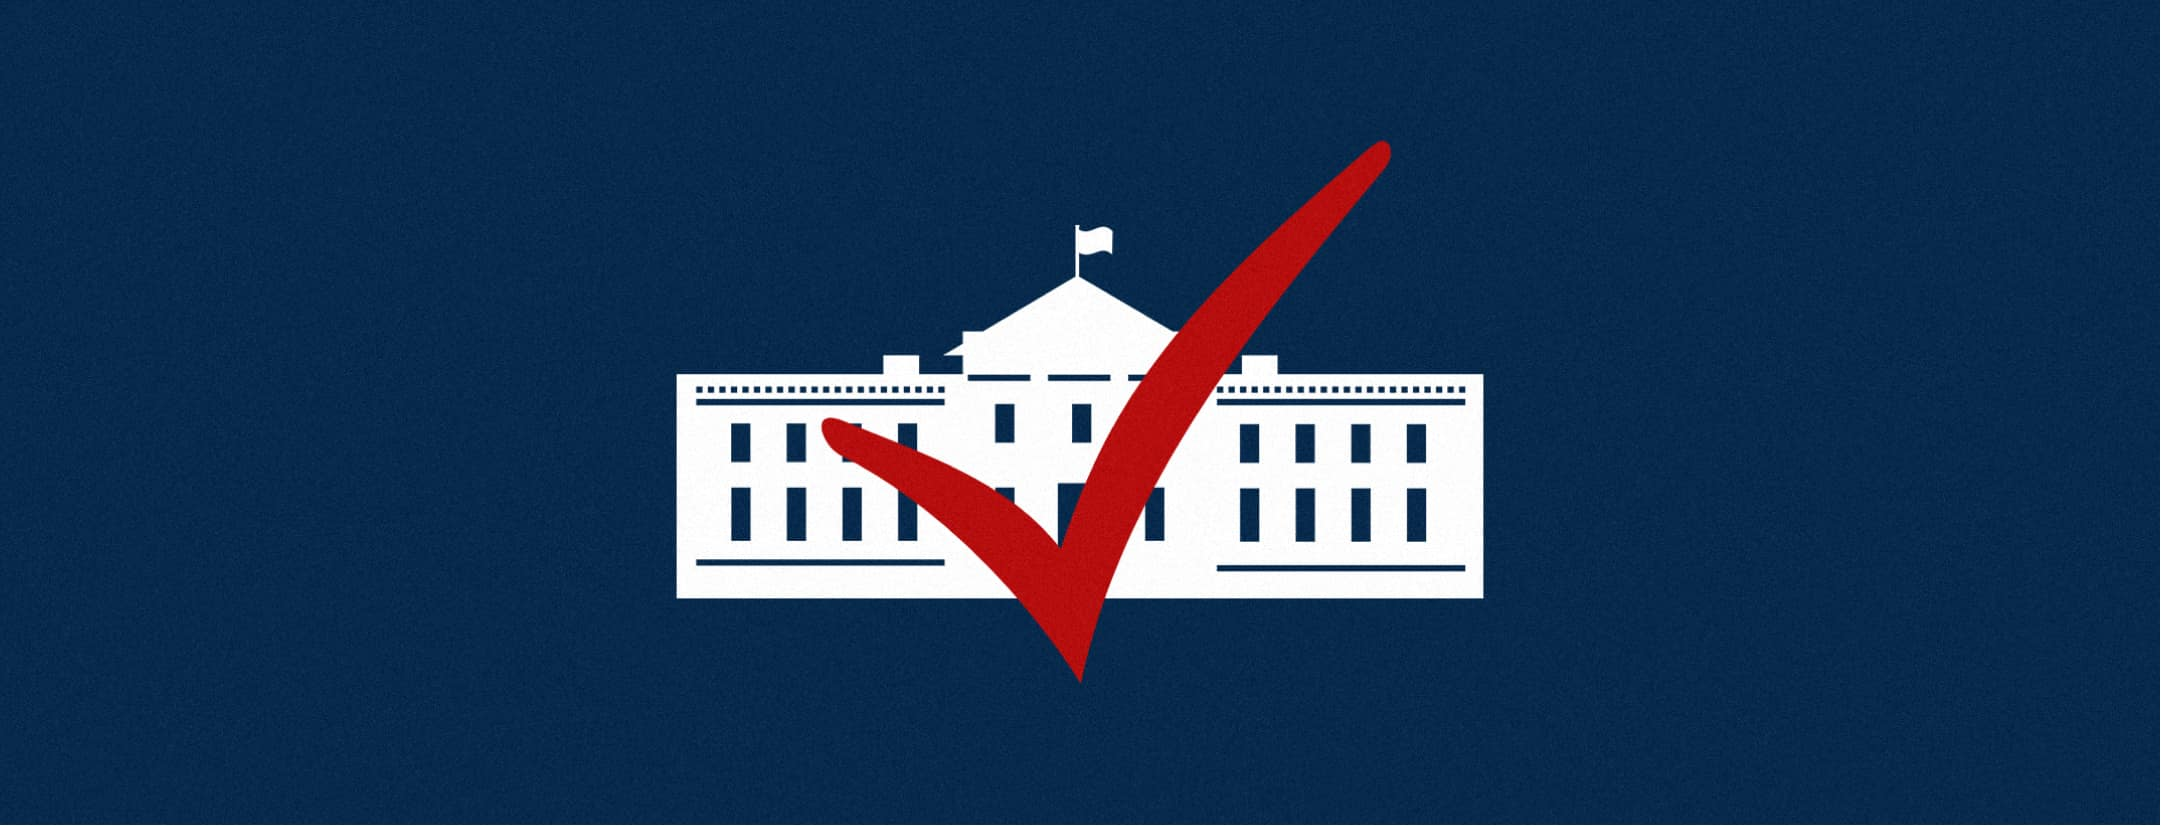 What to Look for in Website Accessibility: Audit of WhiteHouse.gov